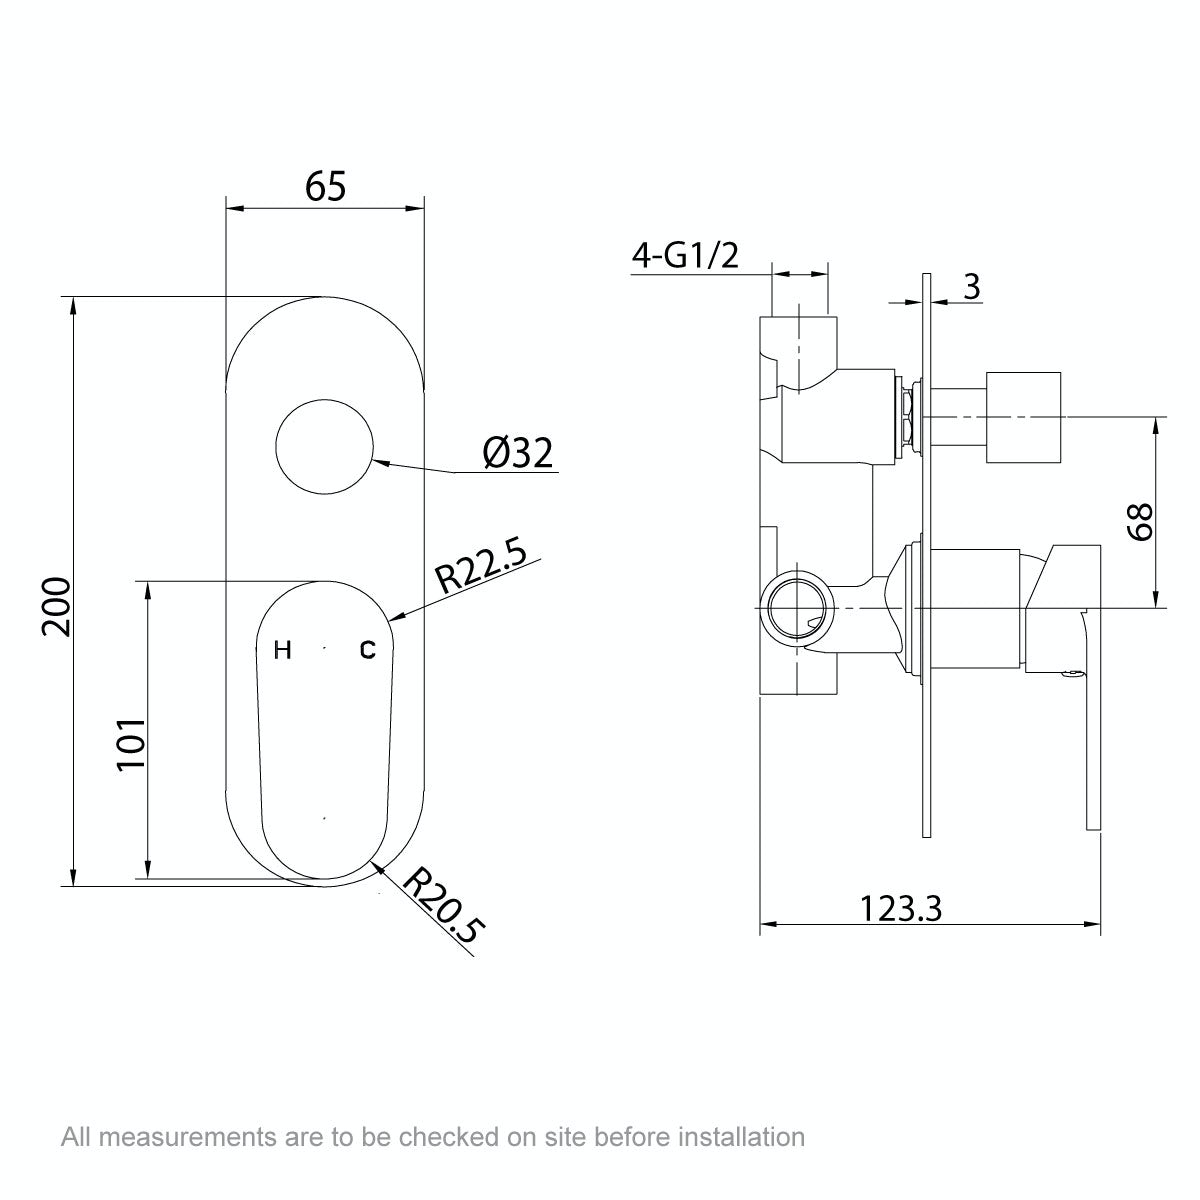 Dimensions for Orchard Round manual shower valve with diverter